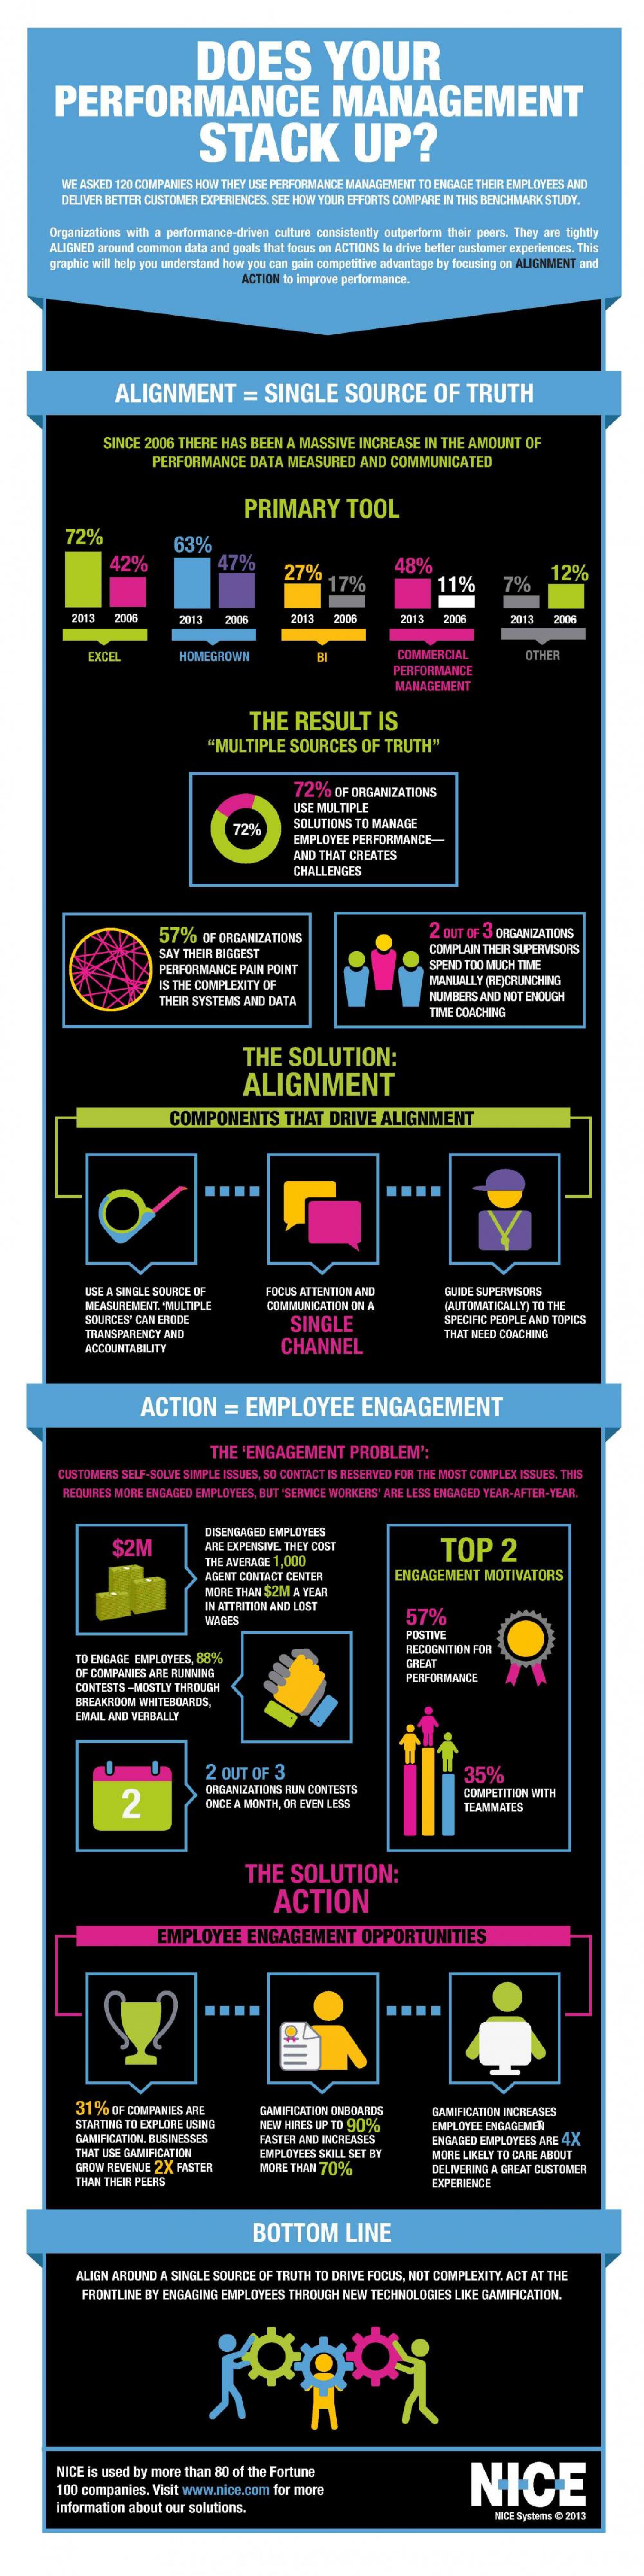 Performance Management Survey Infographic